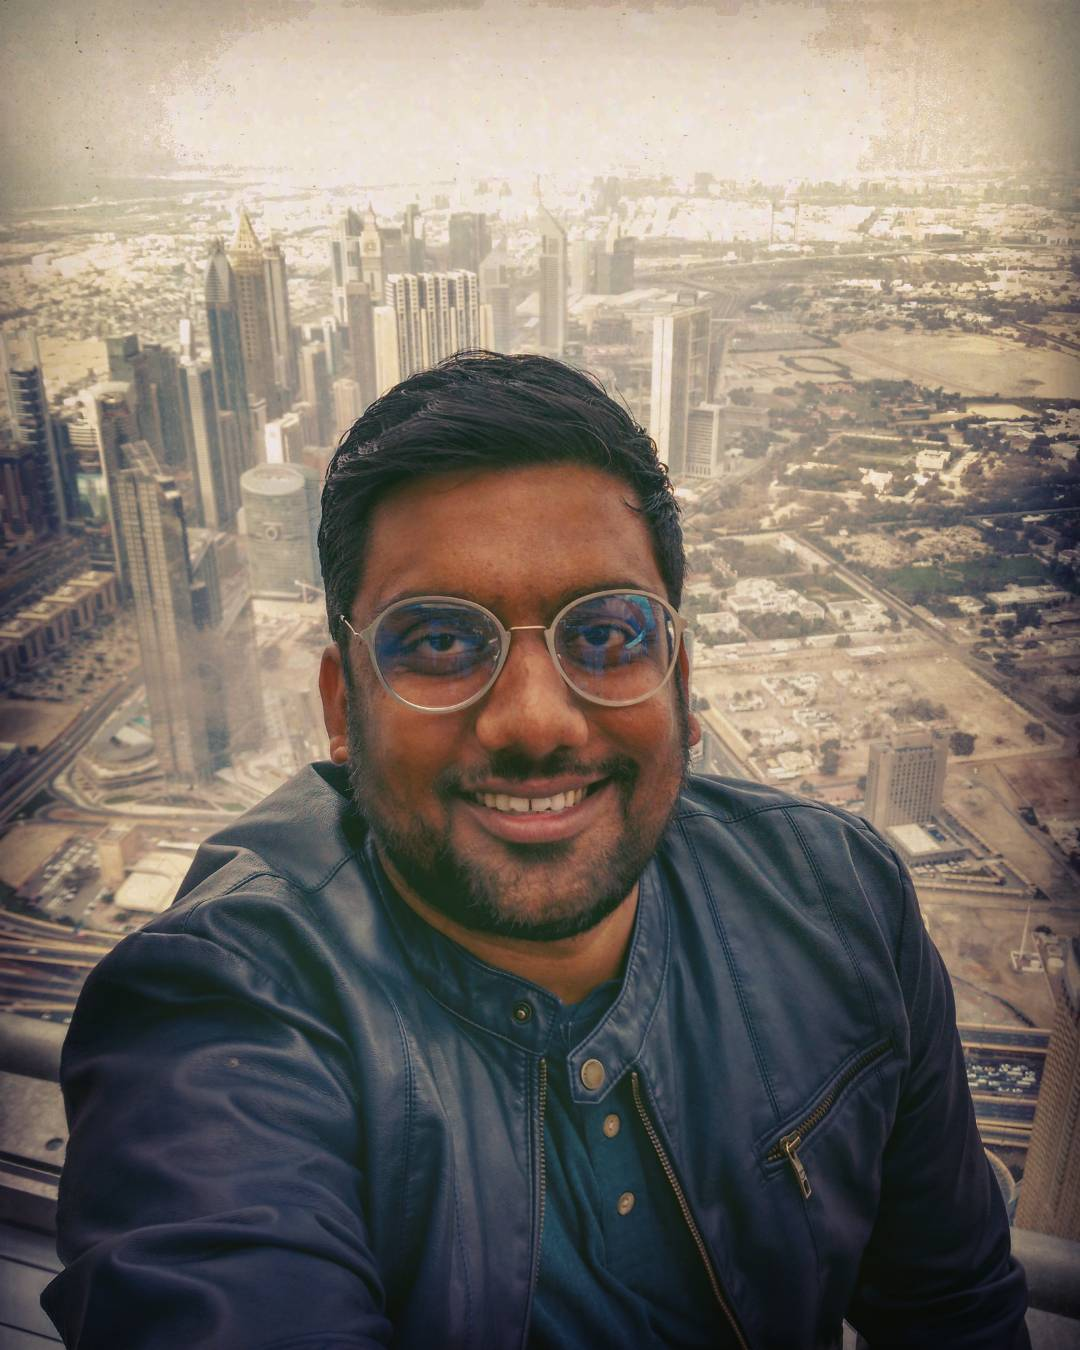 No less than a Poster. 124th floor. #burjkhalifa